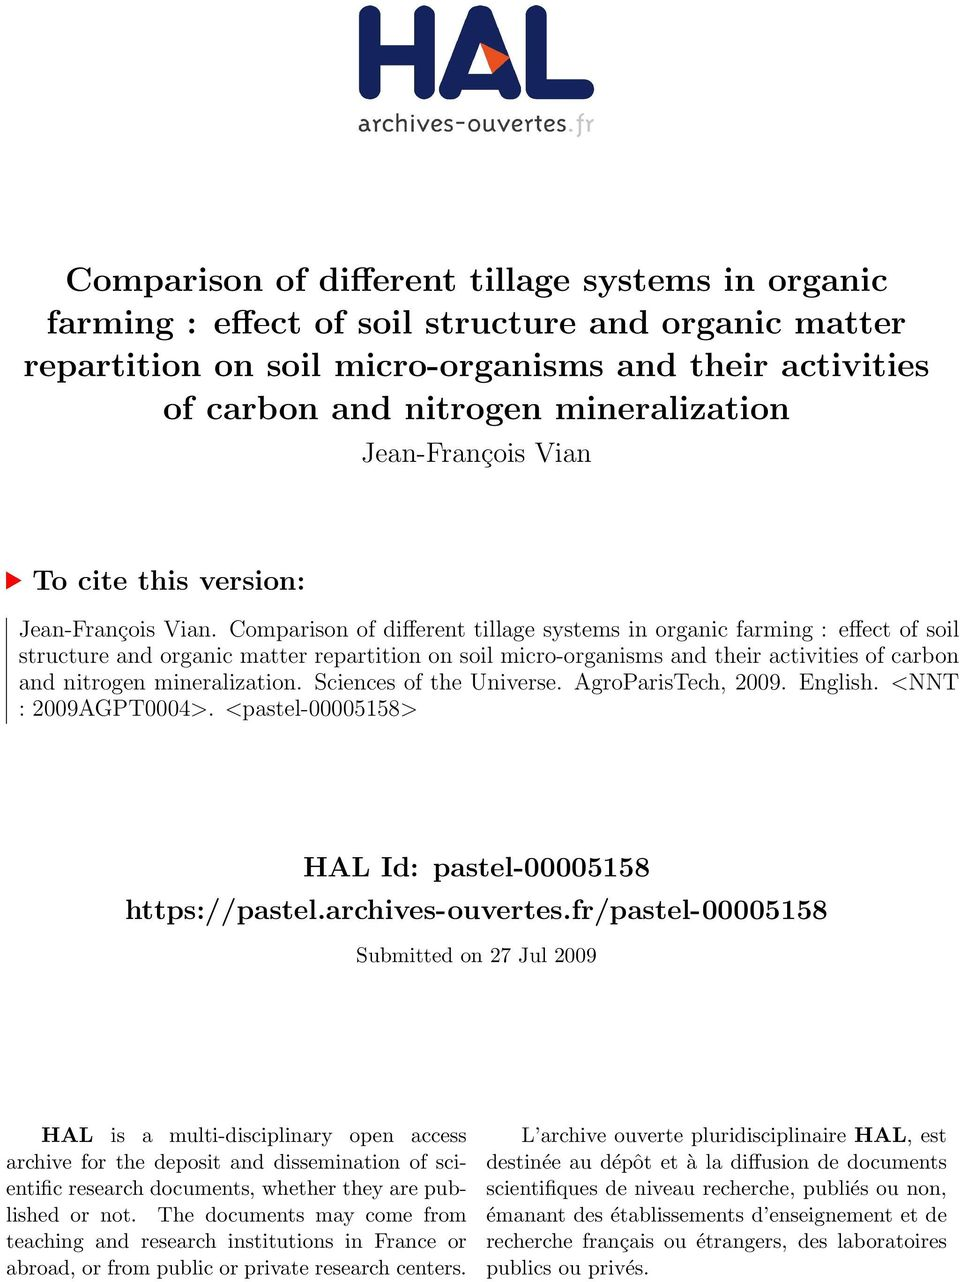 Comprison of different tillge systems in orgnic frming : effect of soil structure nd orgnic mtter reprtition on soil micro-orgnisms nd their ctivities of cron nd nitrogen minerliztion.